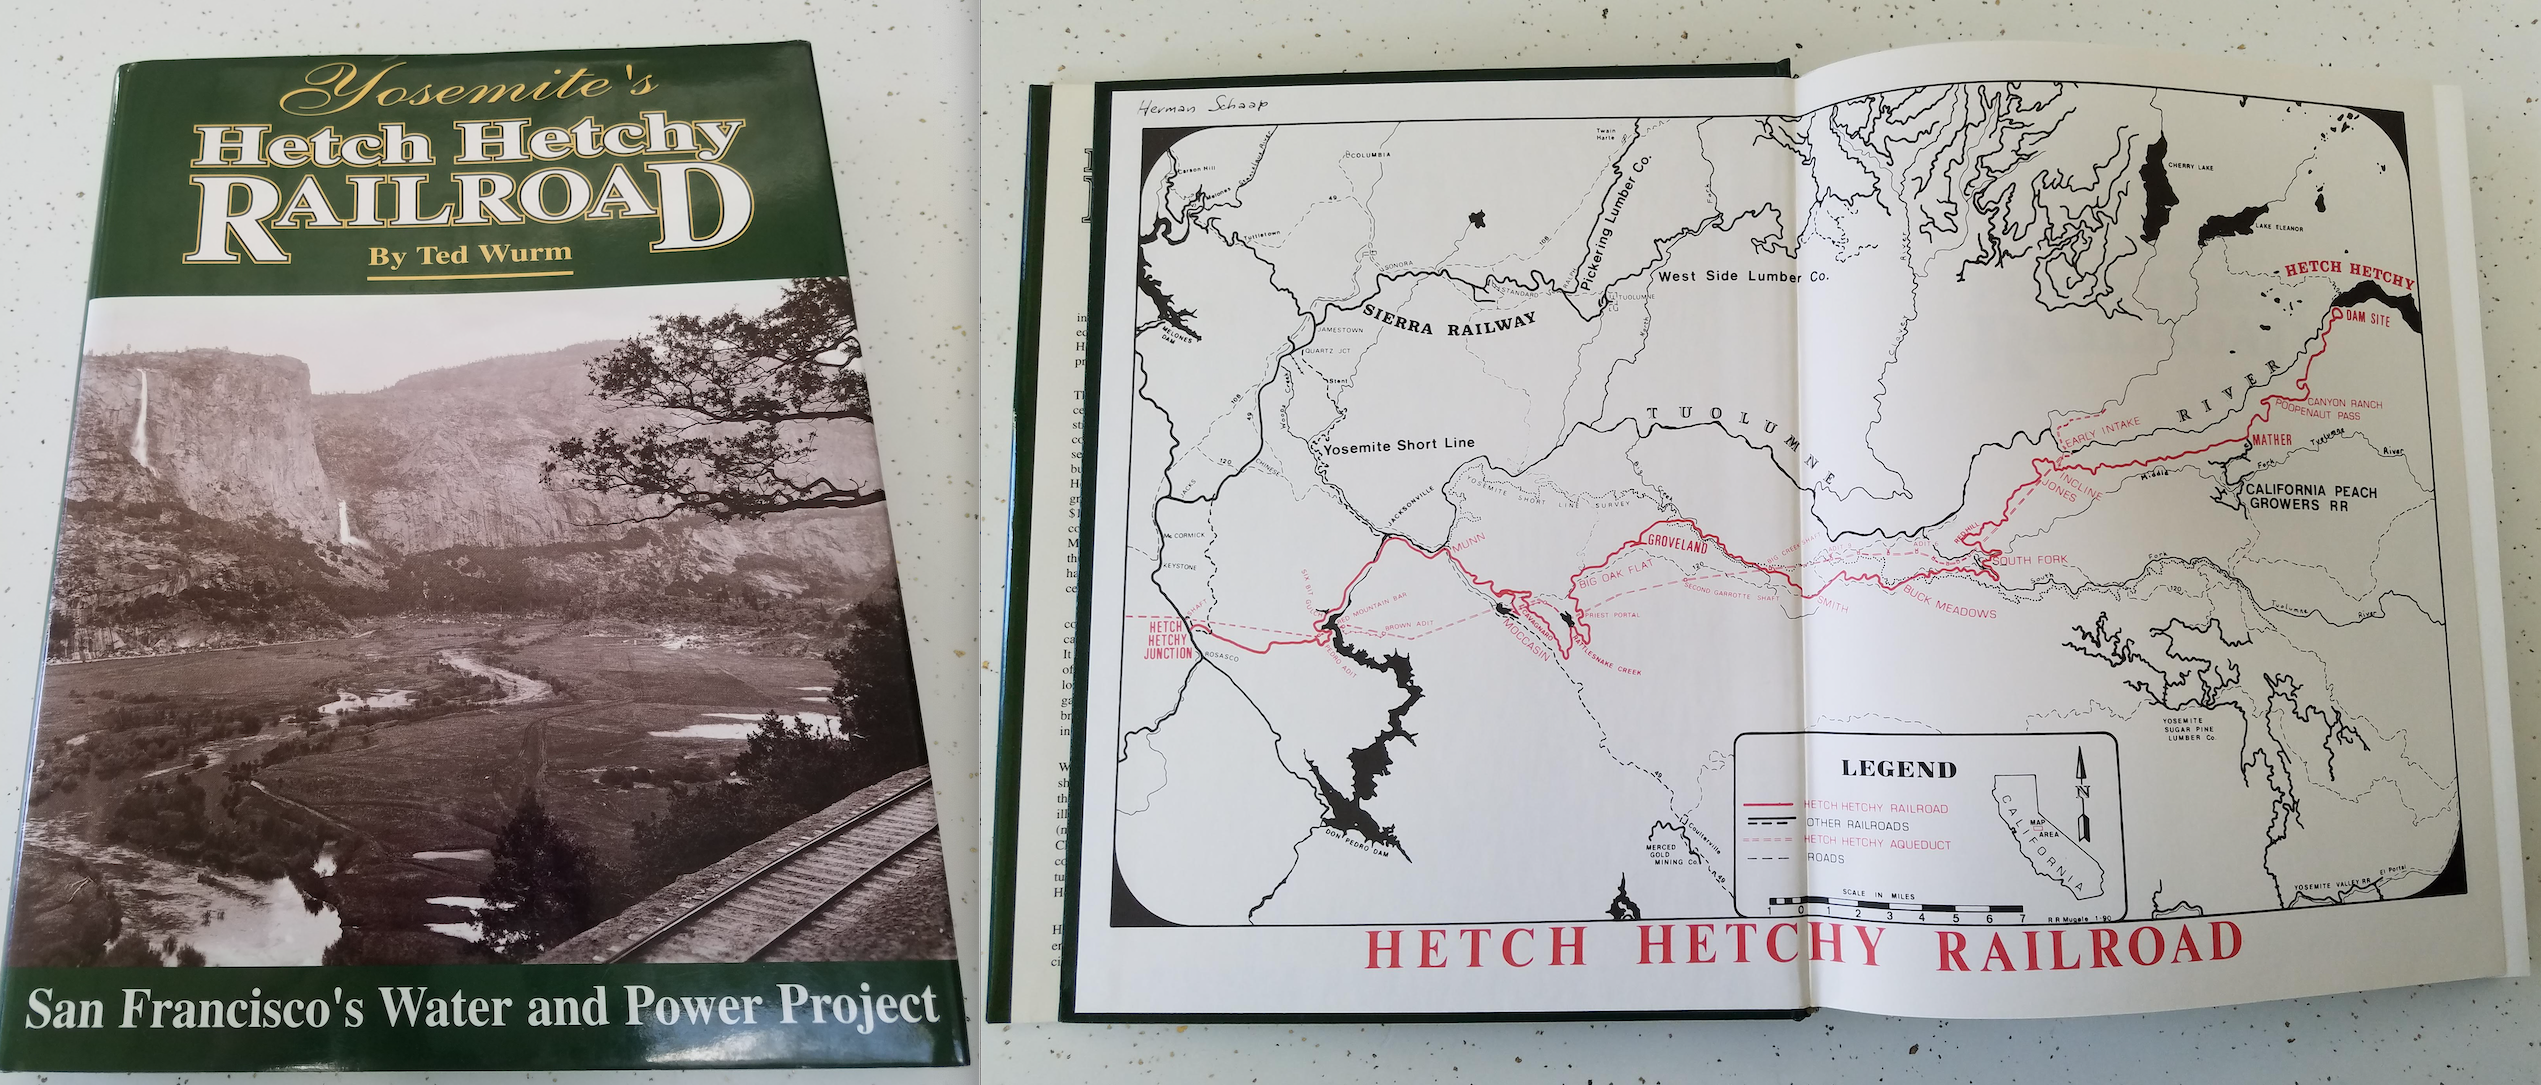 Photo of Ted Wurm's book about the Hetch Hetchy Railroad